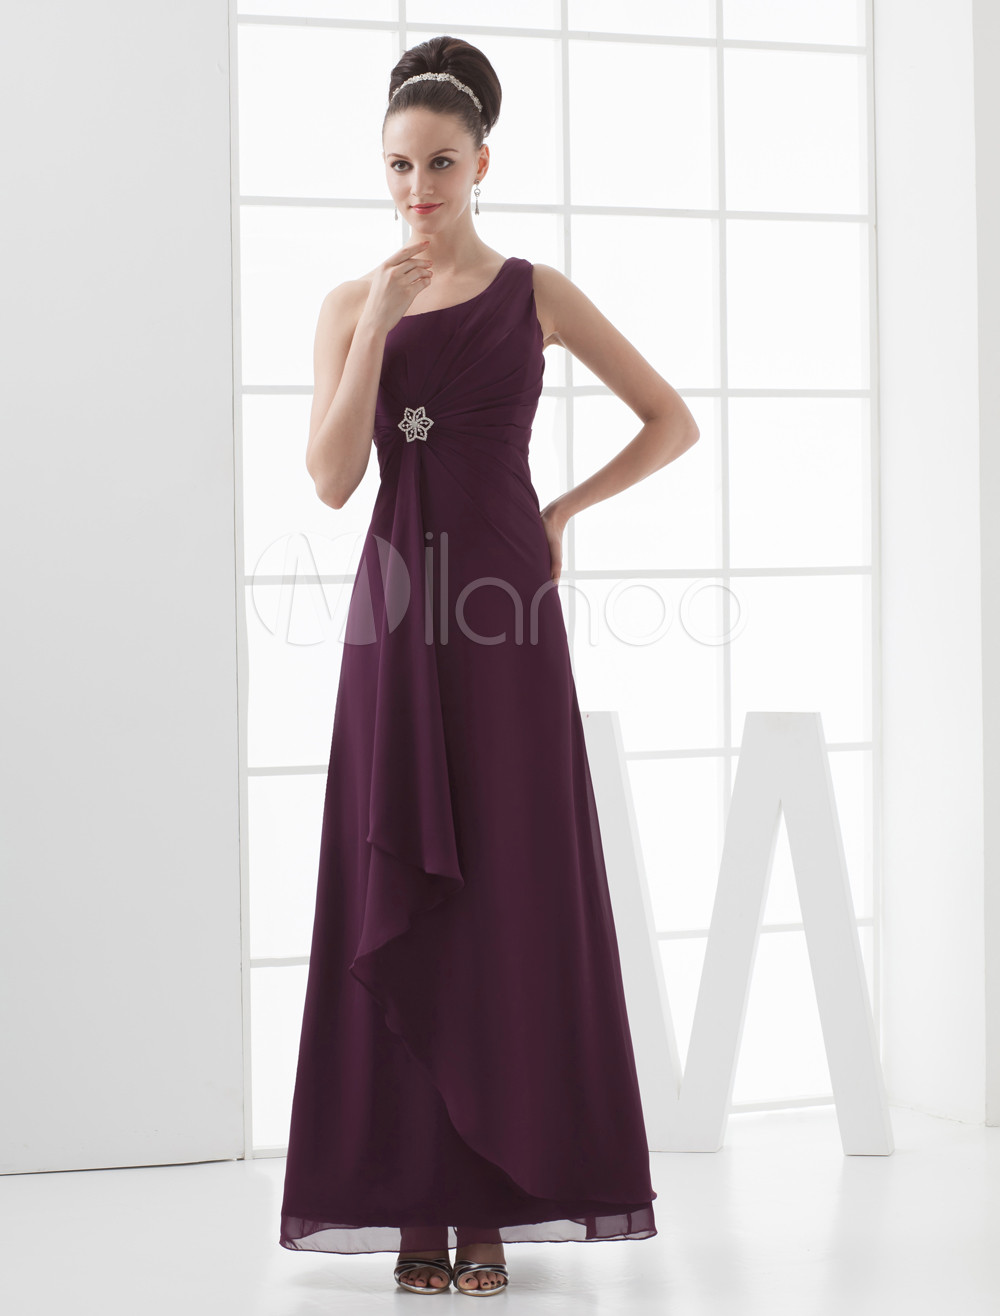 Chiffon One Shoulder Floor Length Bridesmaid Dress